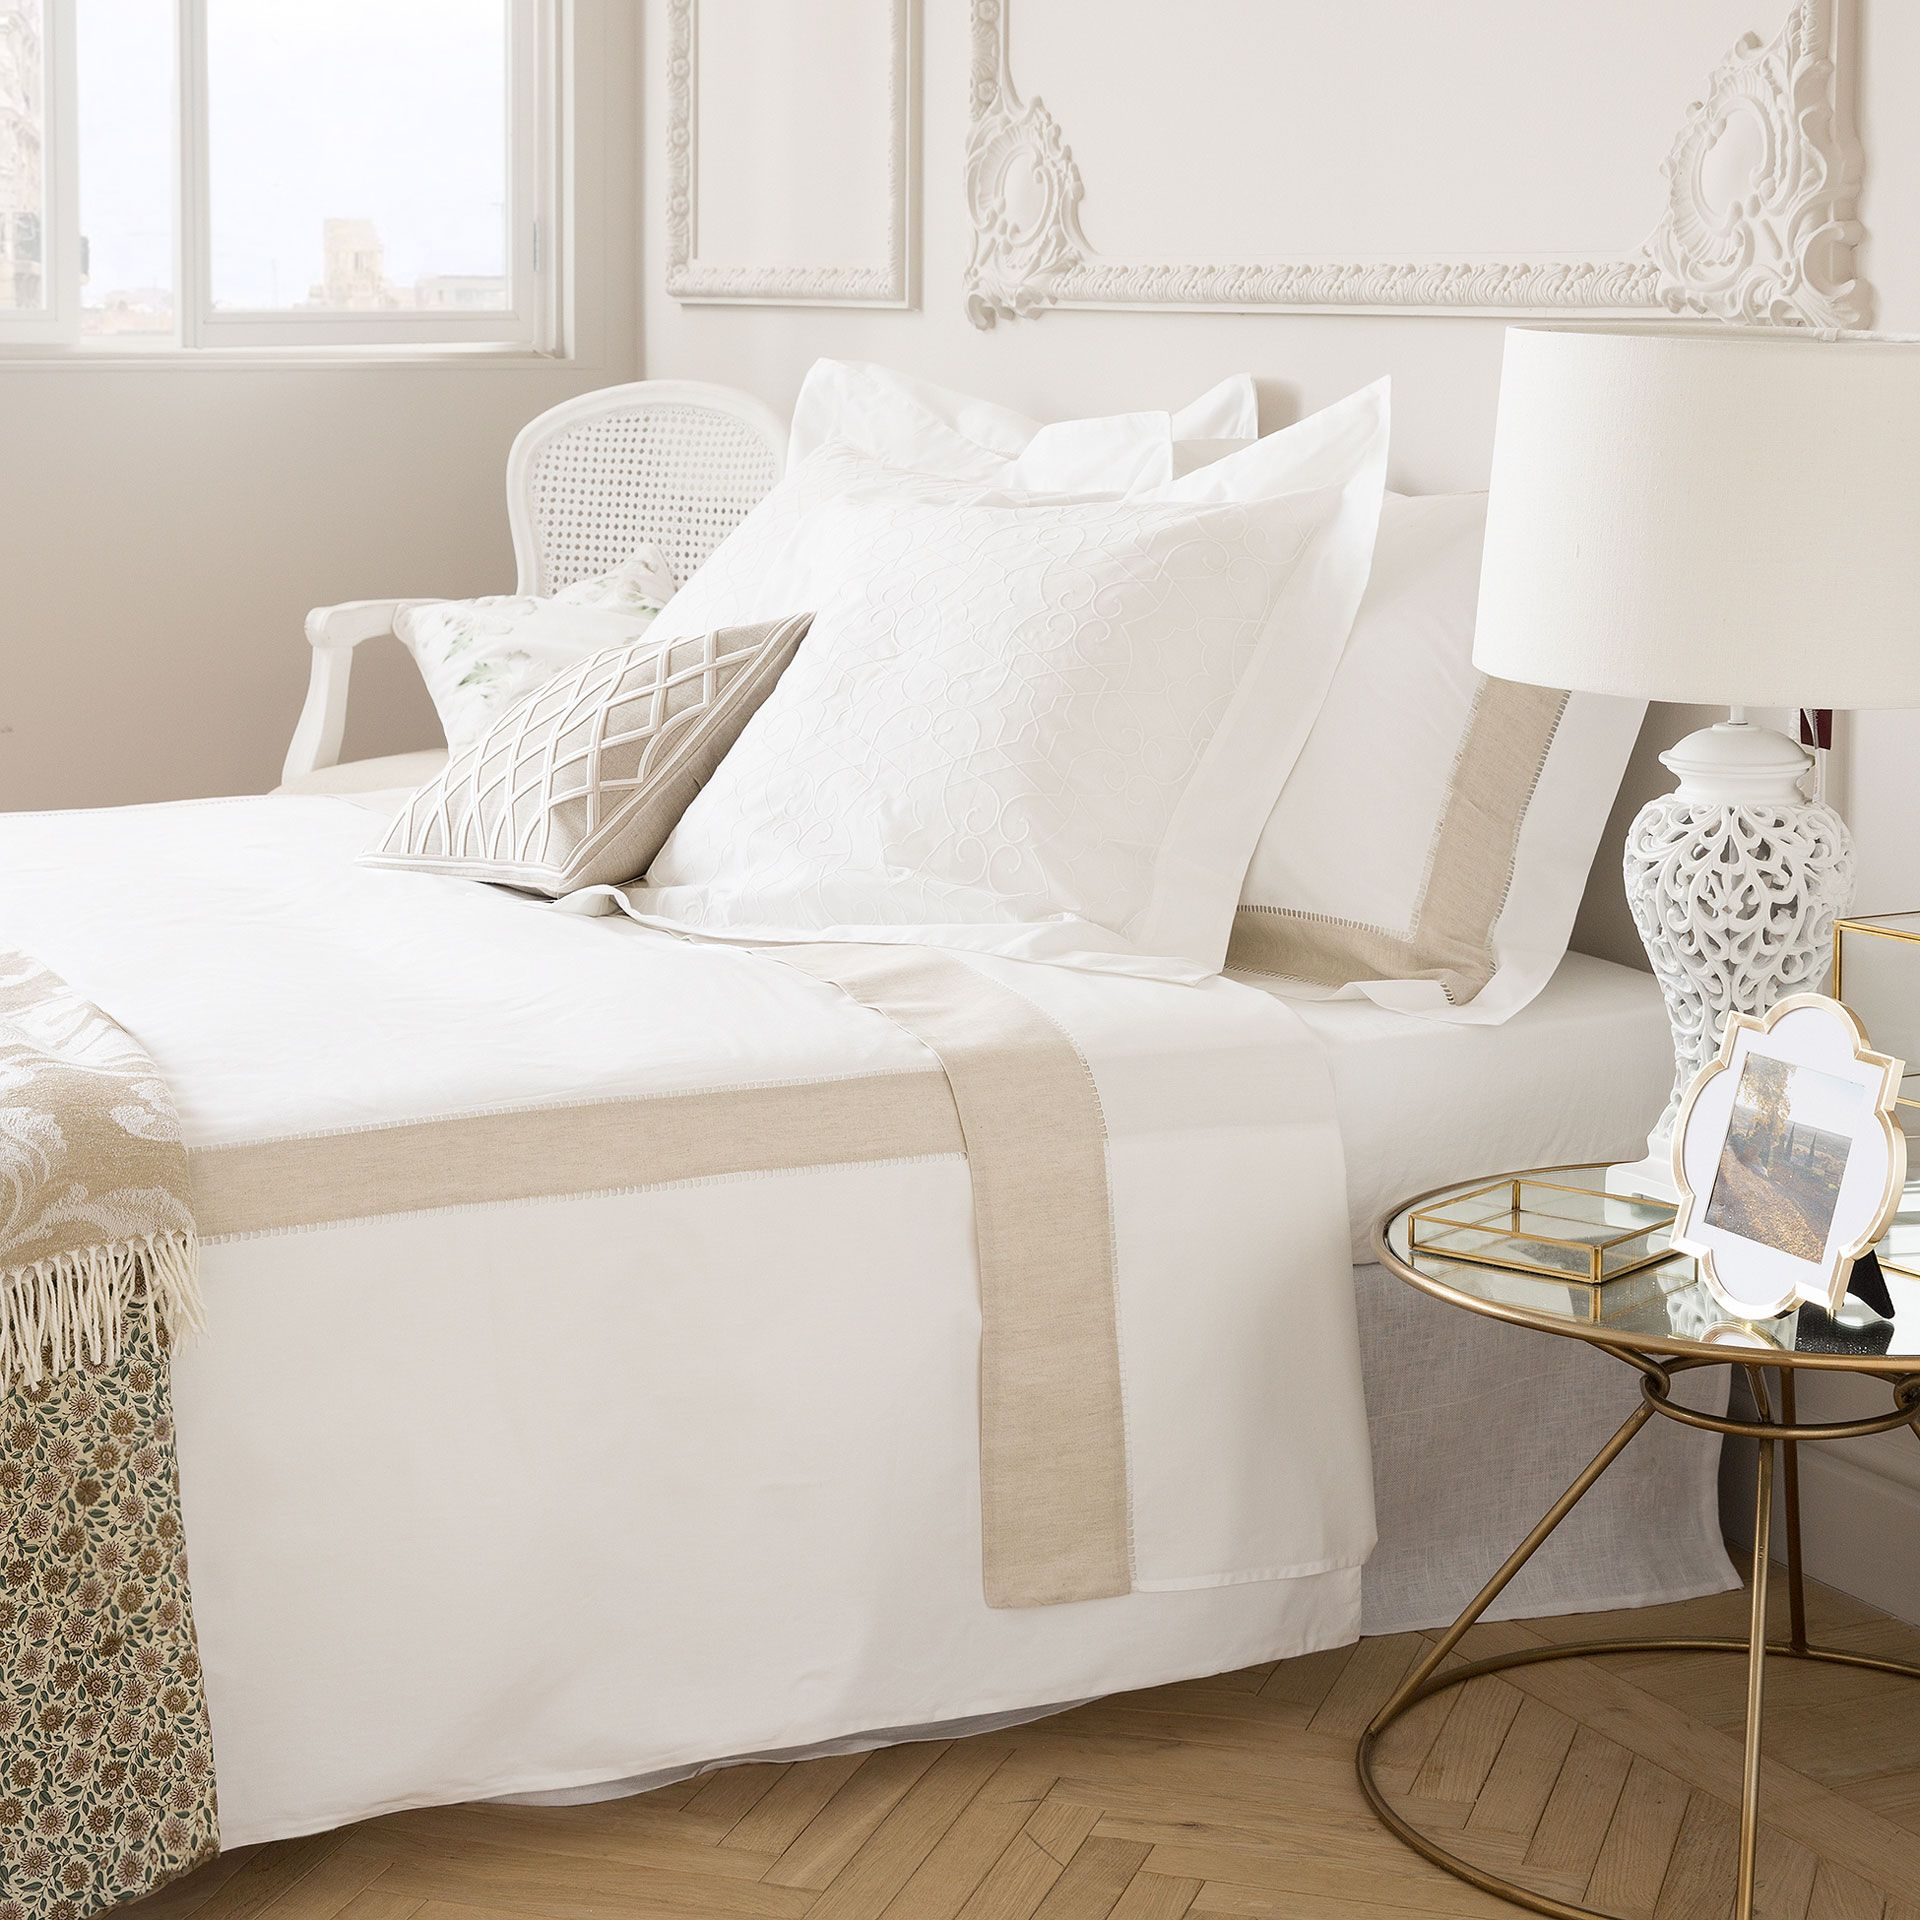 S banas y fundas contraste en lino bedrooms linens and - Zara home sabanas ...